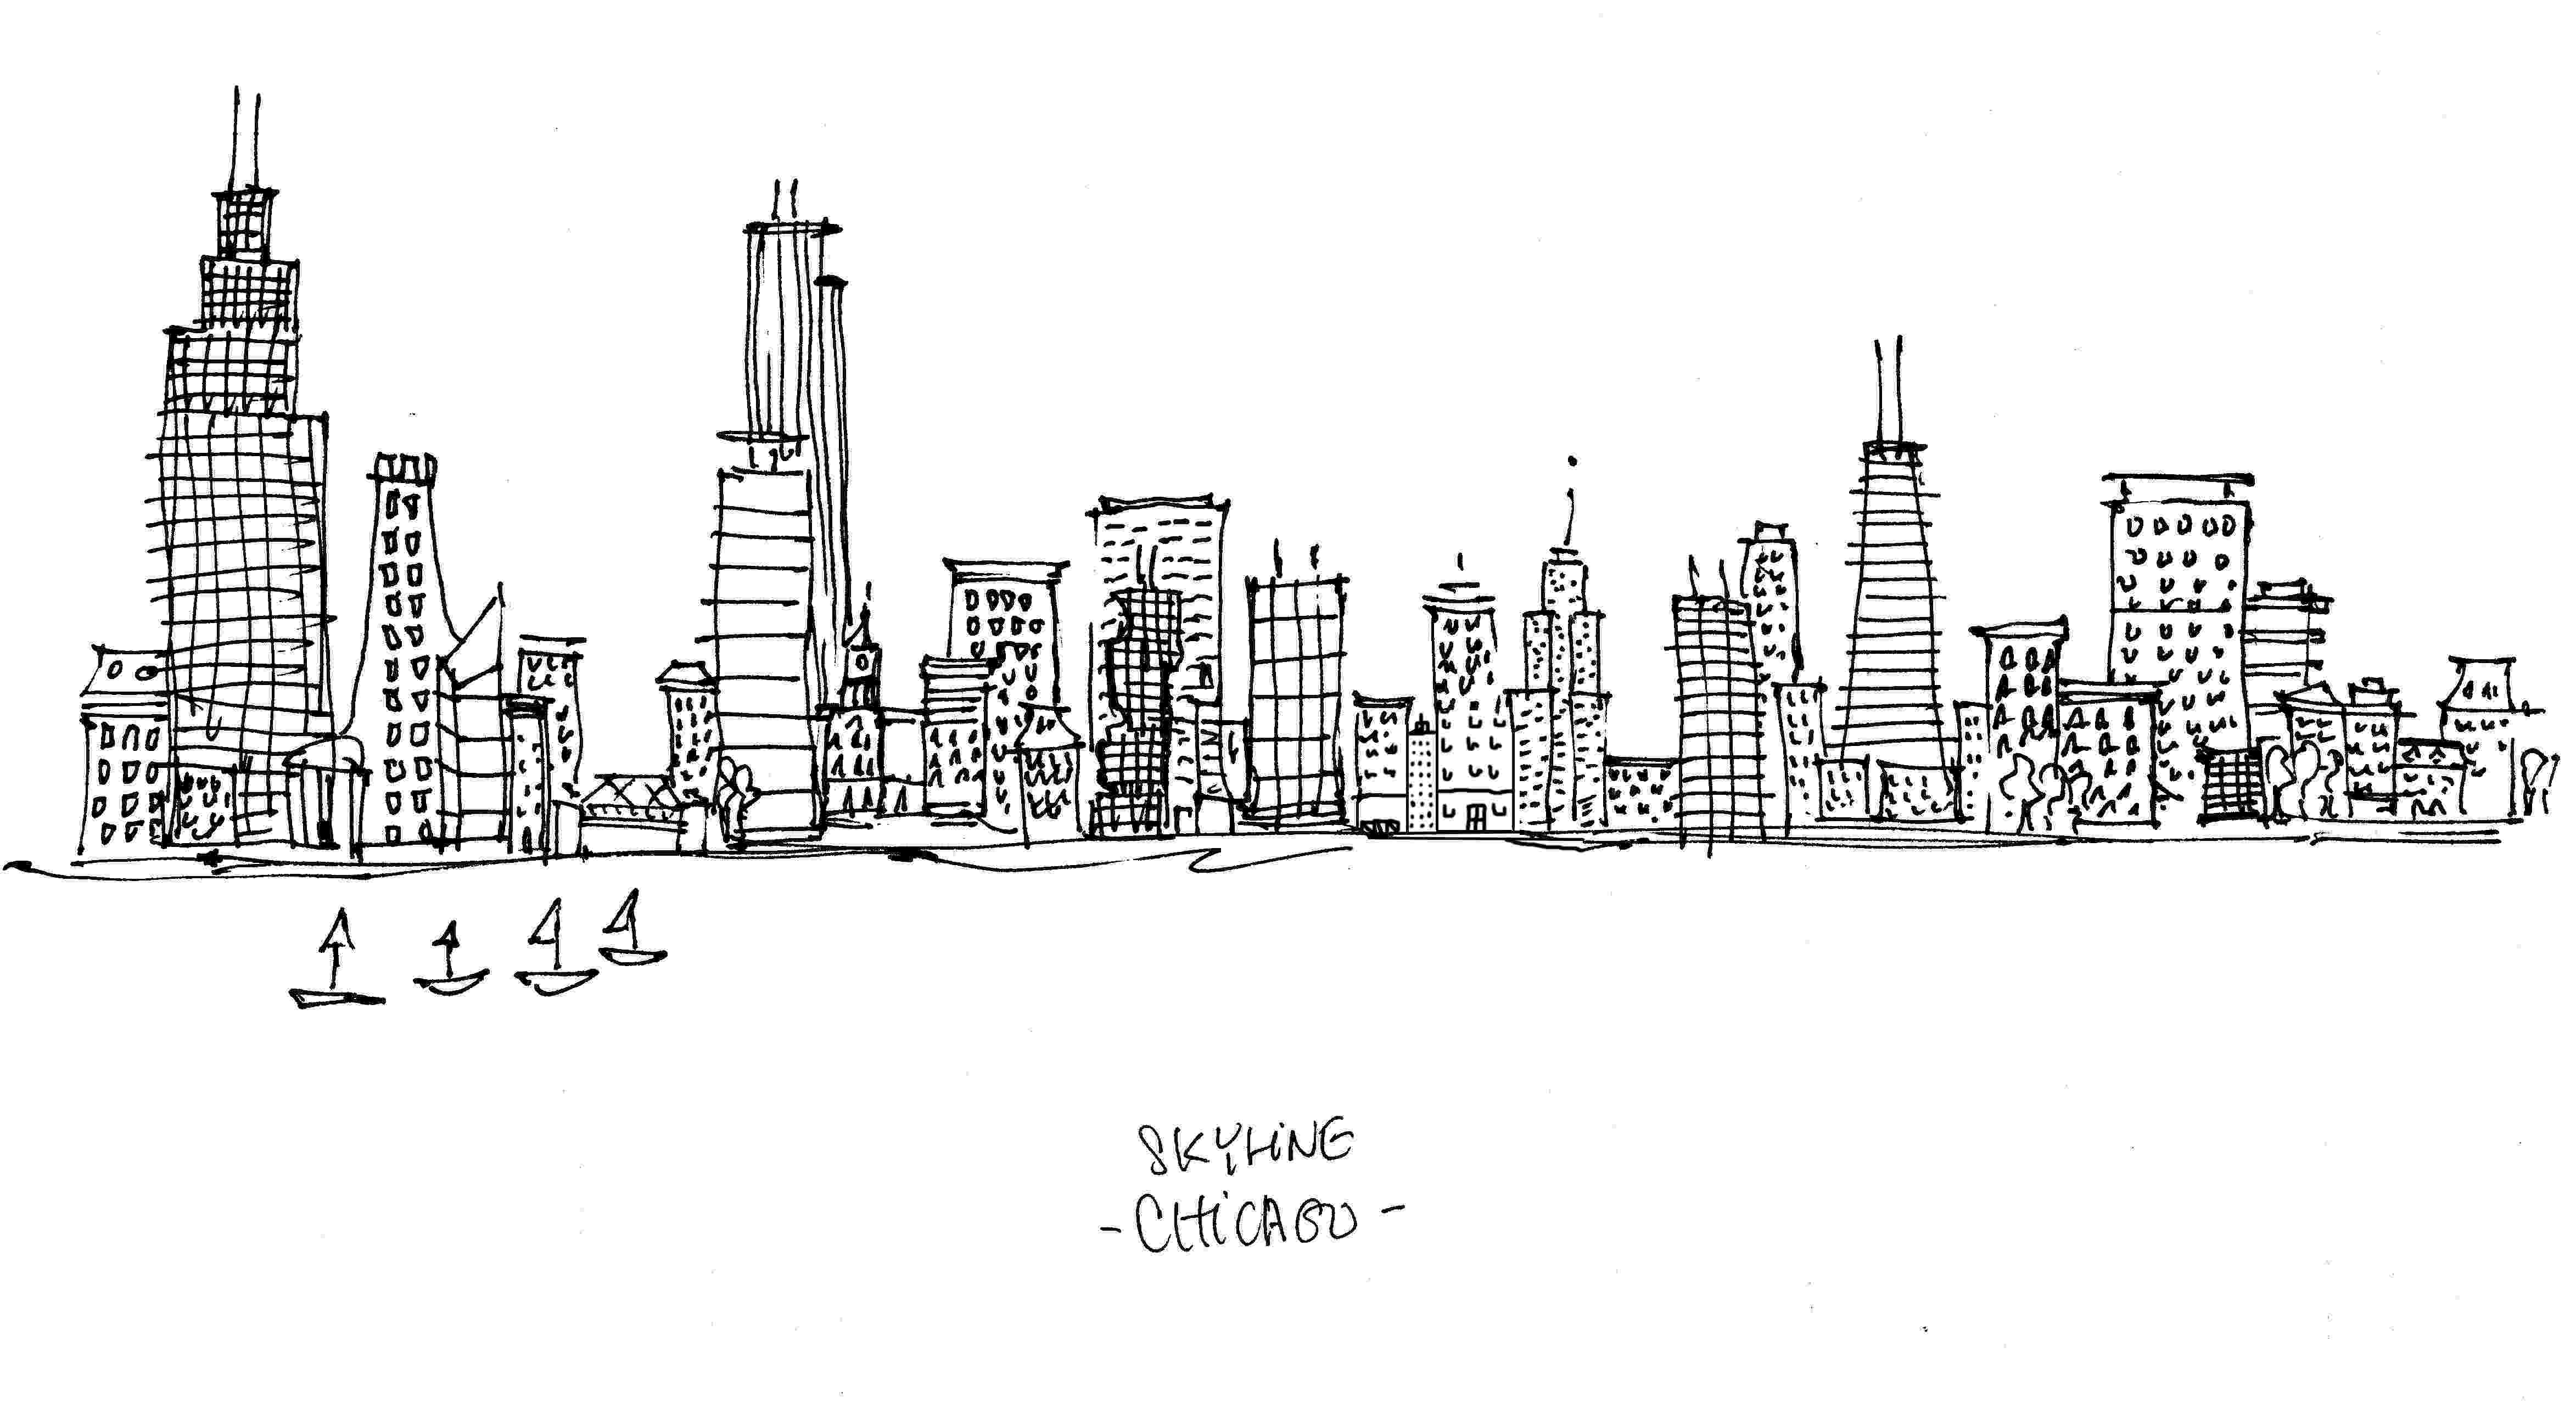 chicago skyline coloring page new york skyline coloring page cartoon vector outline skyline chicago coloring page